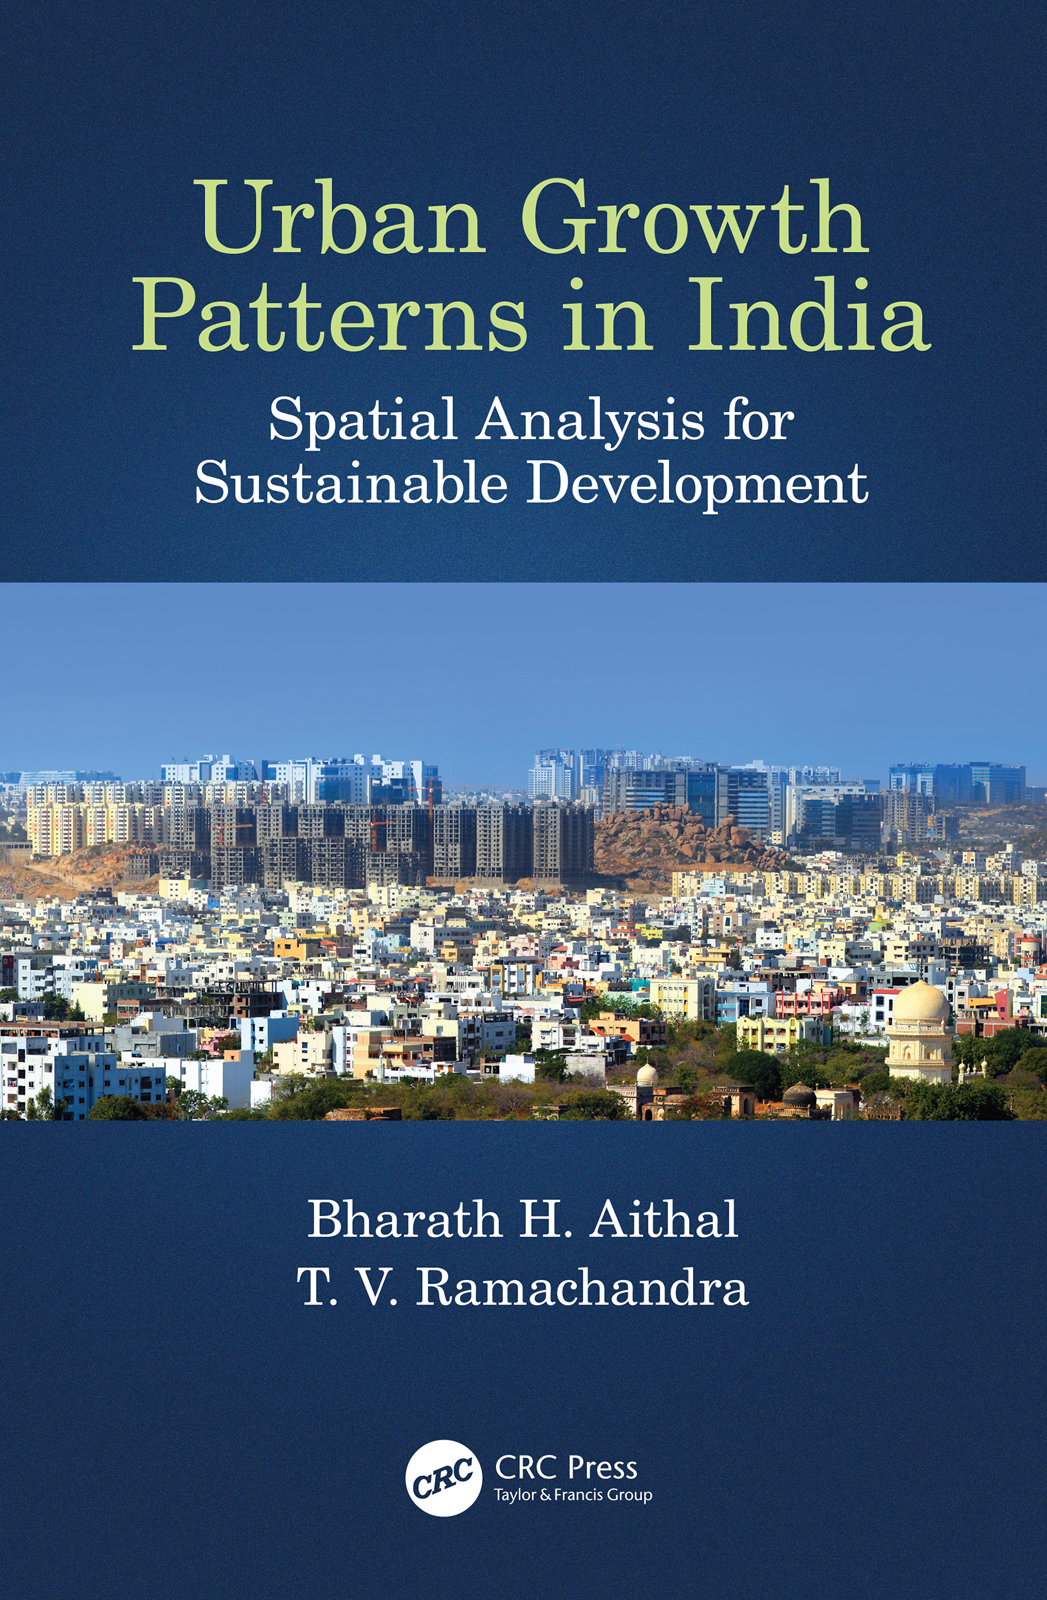 Urban Growth Patterns in India: Spatial Analysis for Sustainable Development book cover